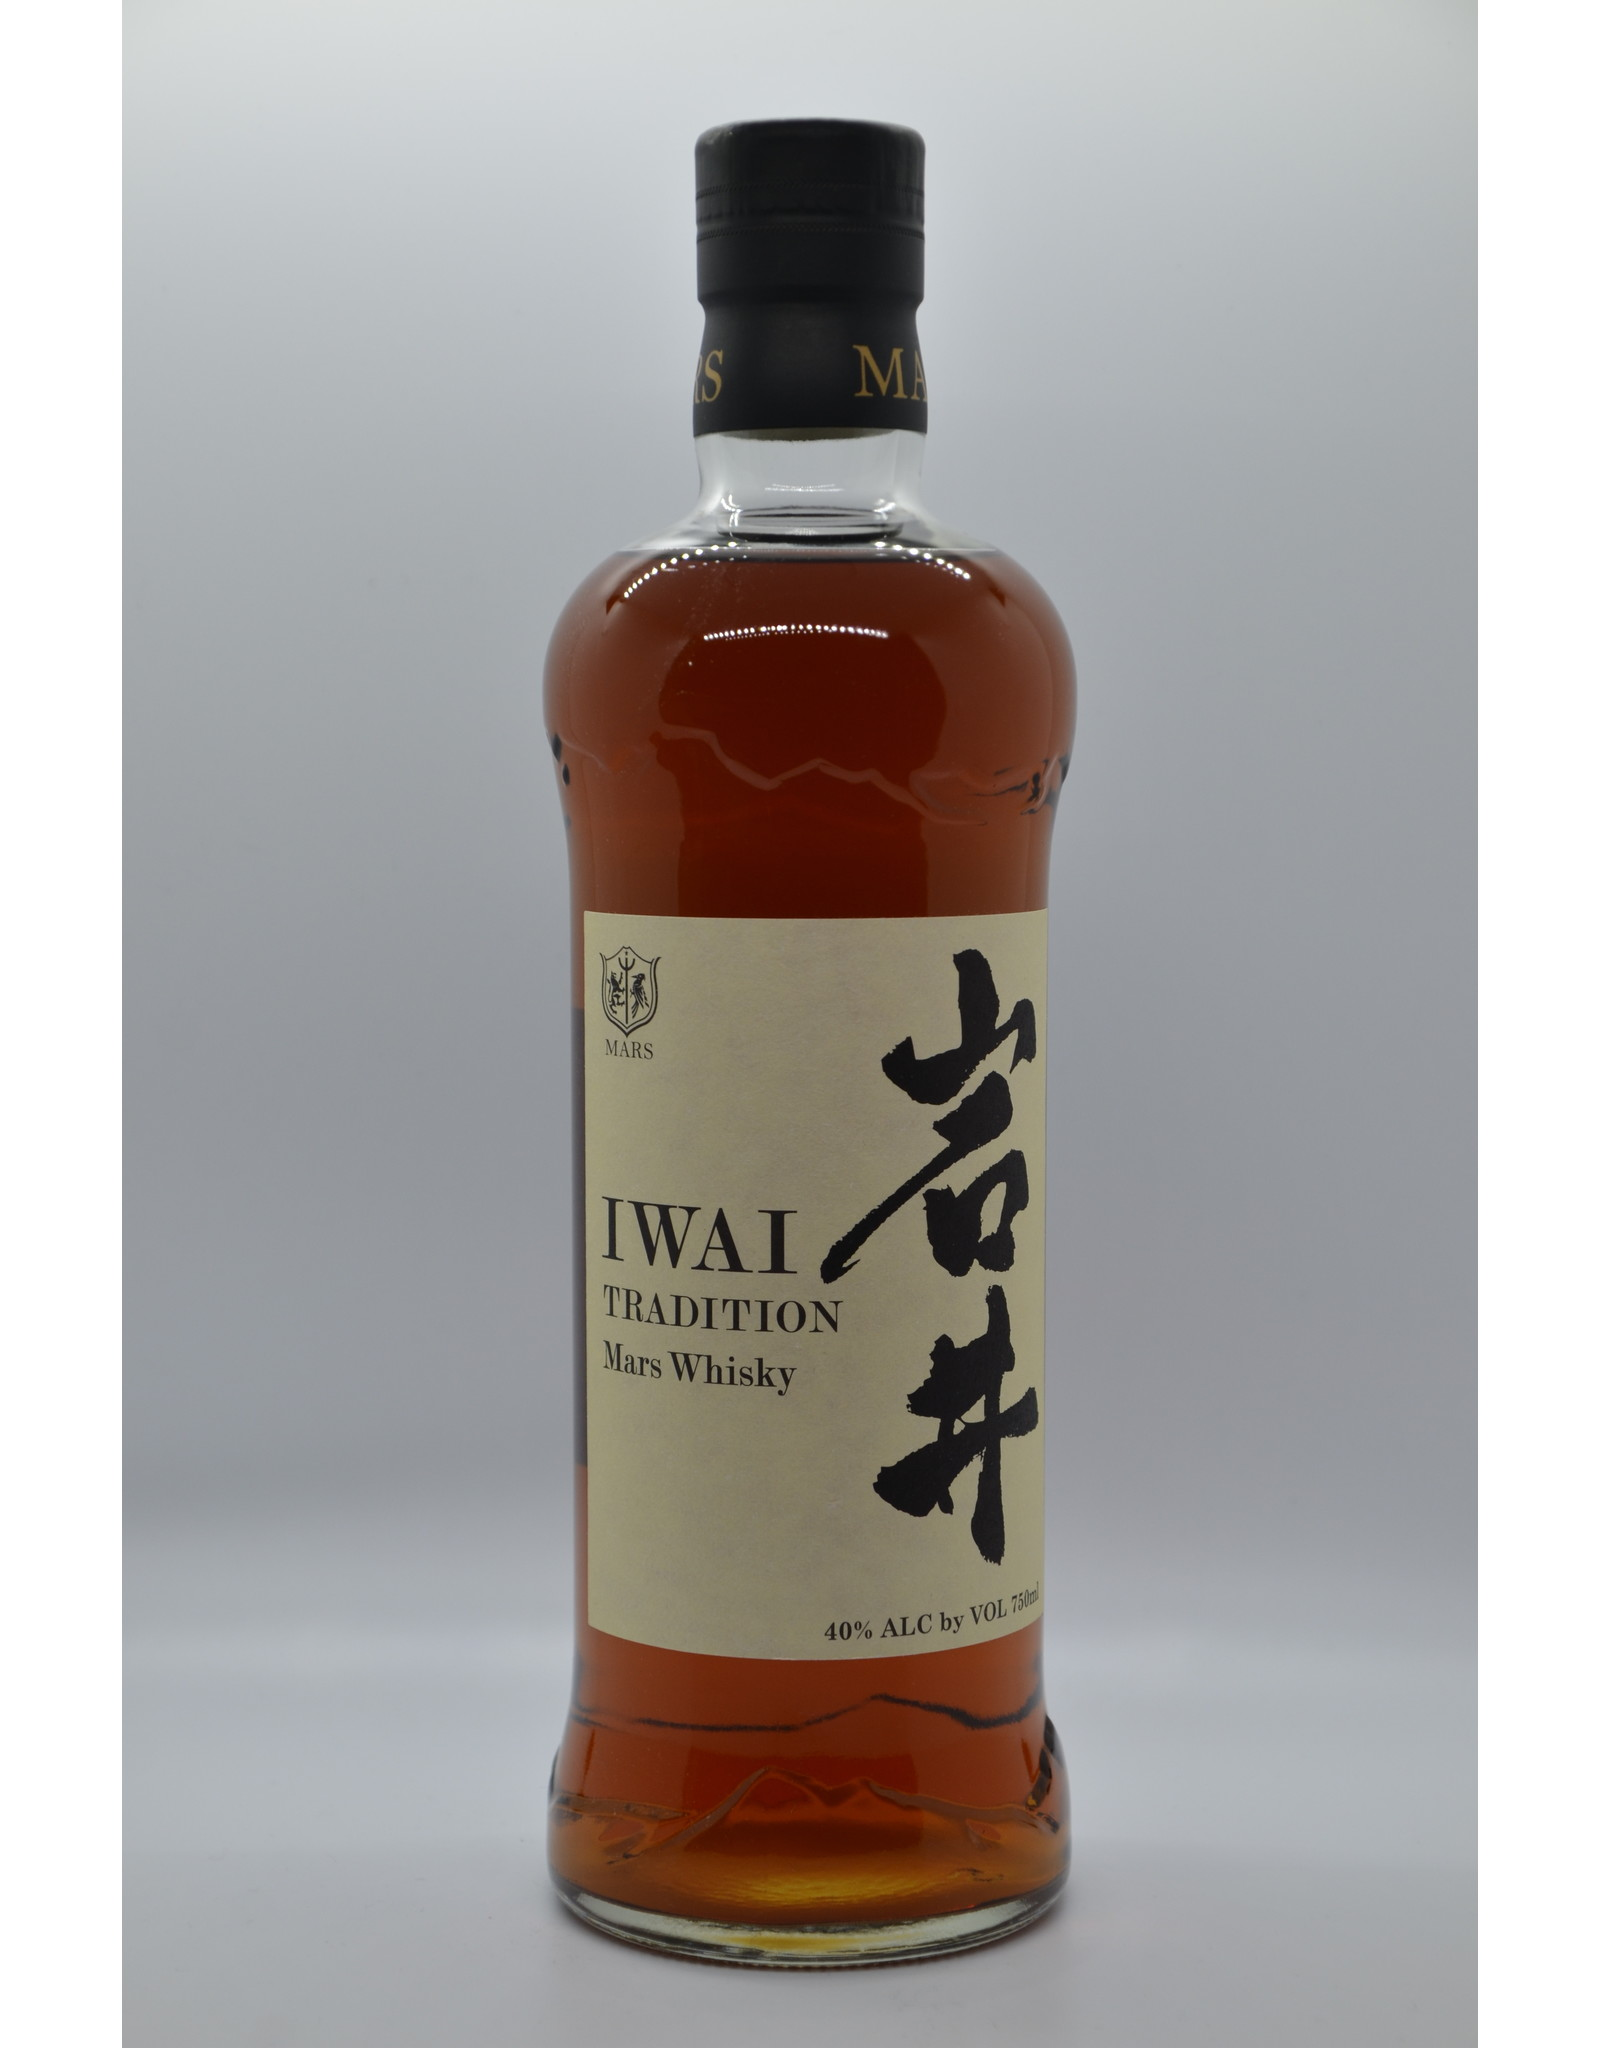 Japan Iwai Tradition Mars Whisky (White label)